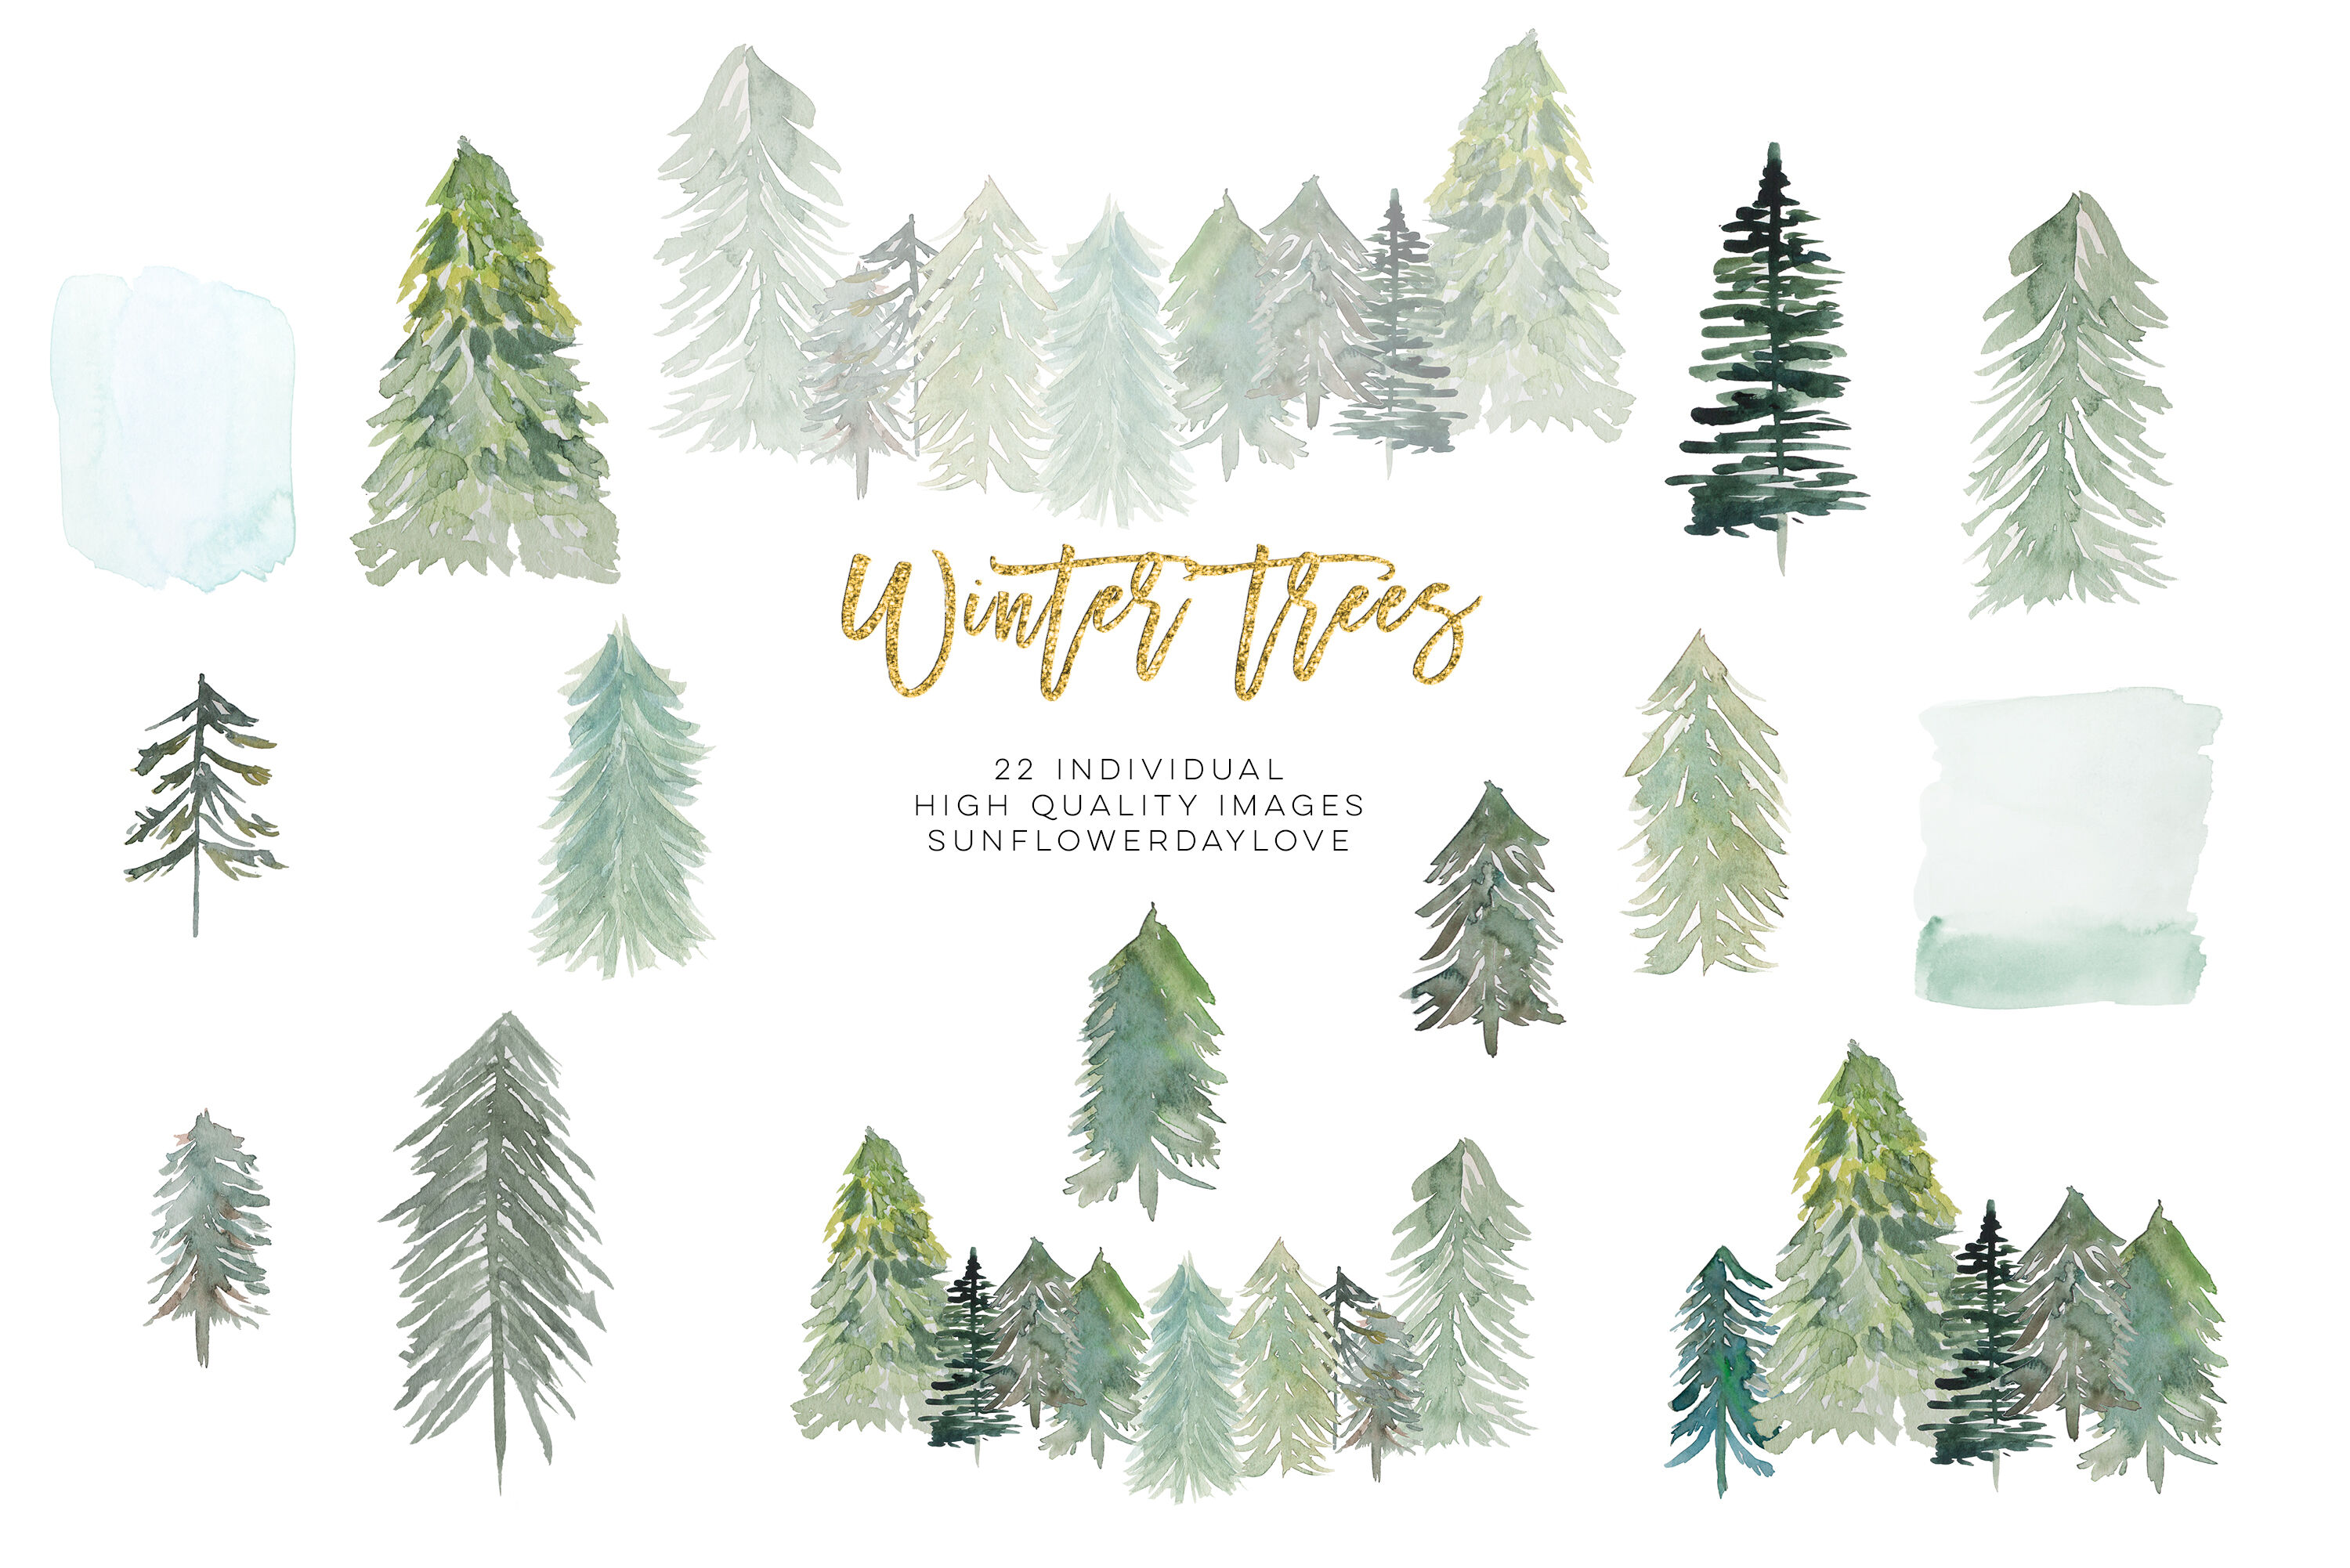 conifer forest trees clipart fir trees clipart watercolor pine trees by sunflower day love thehungryjpeg com conifer forest trees clipart fir trees